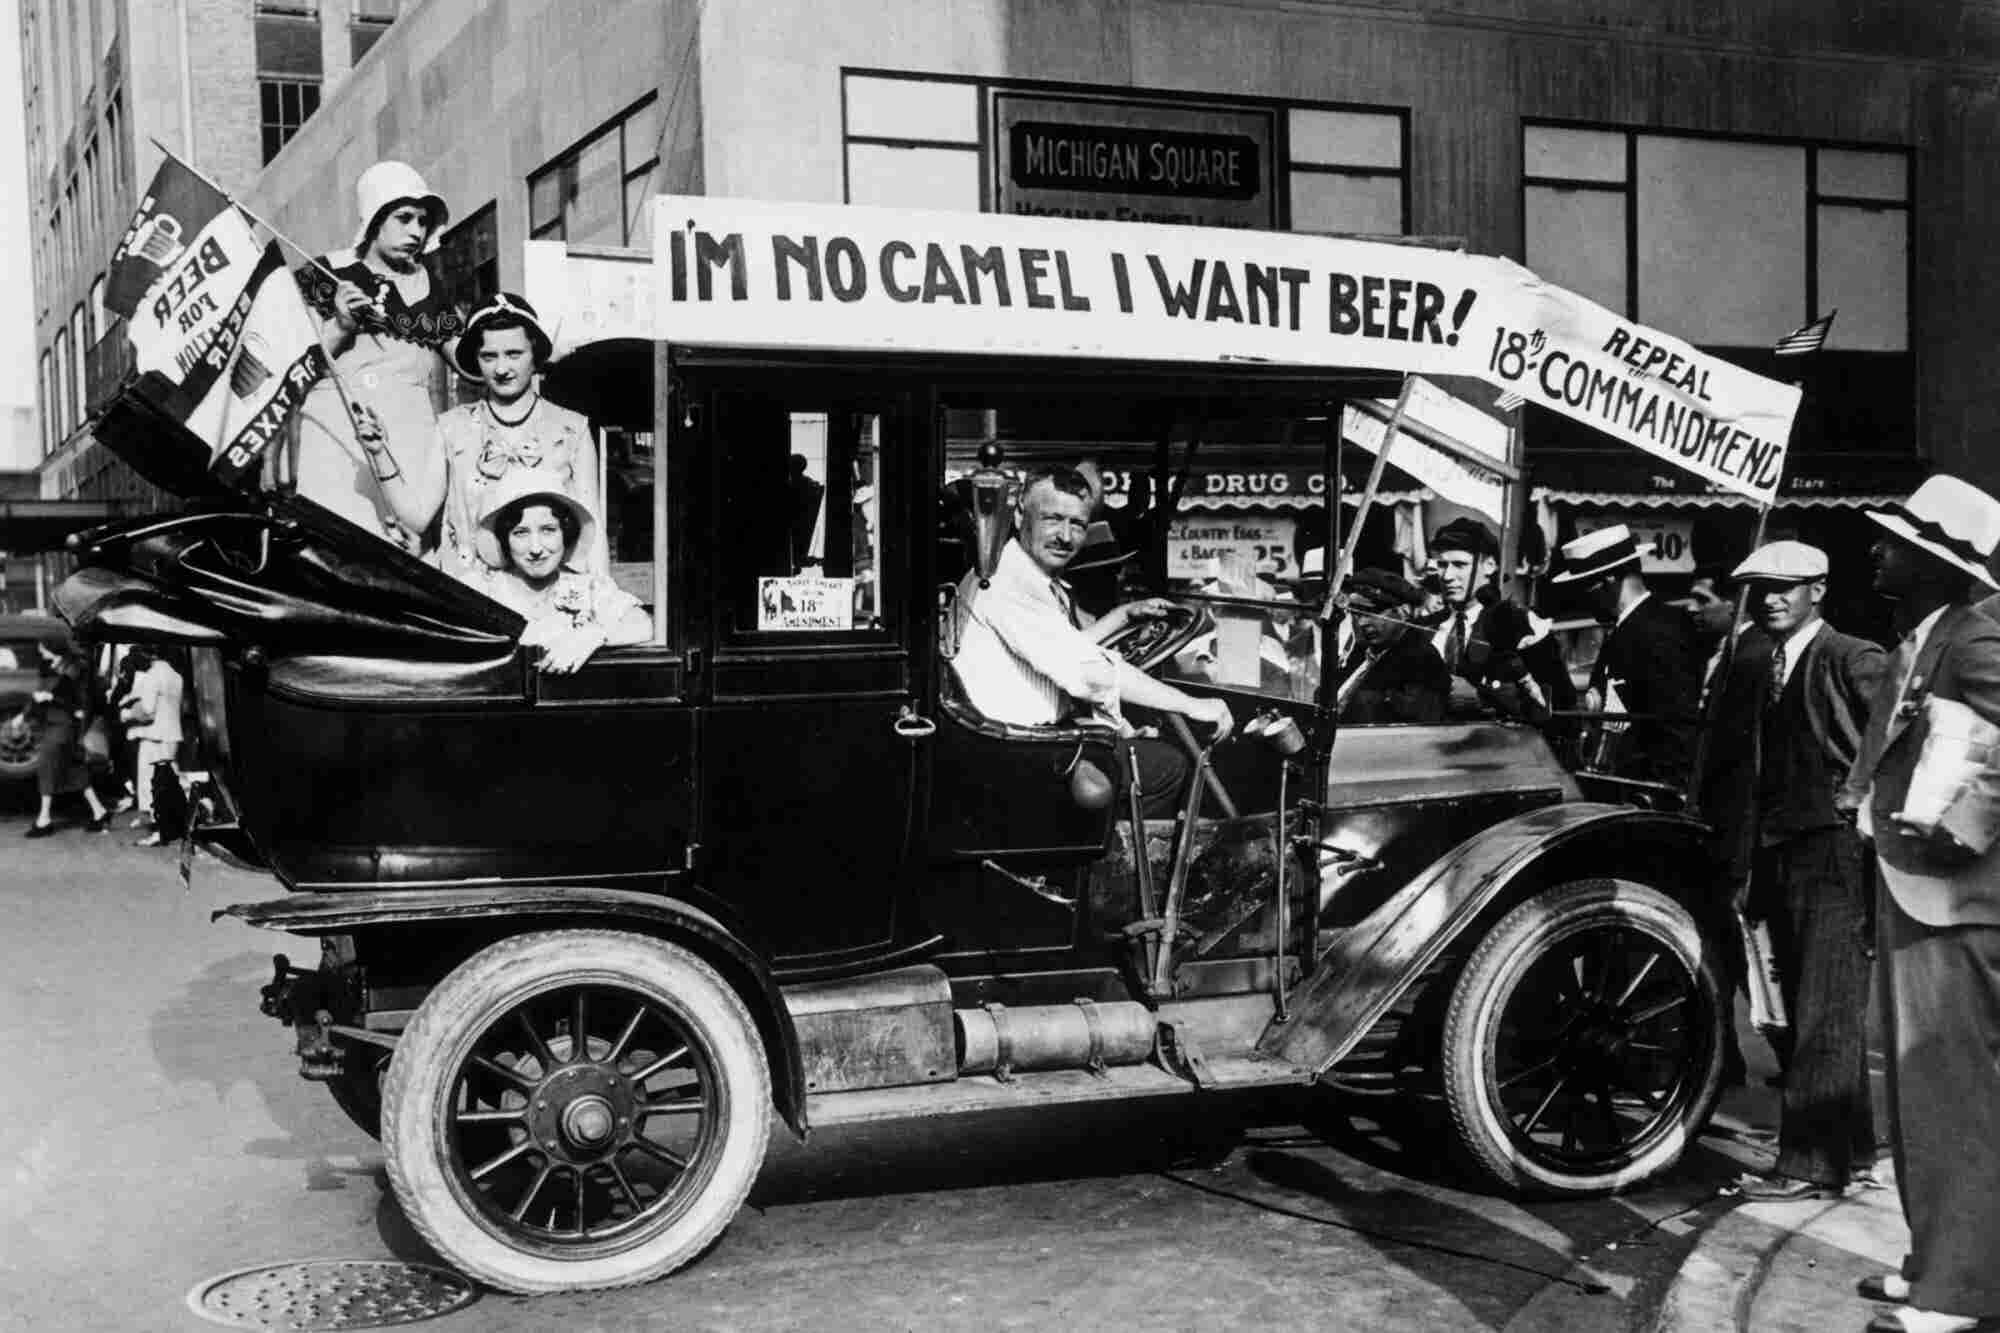 America Began Alcohol Prohibition in 1919 but It's Edging Toward Ending Cannabis Prohibition in 2019